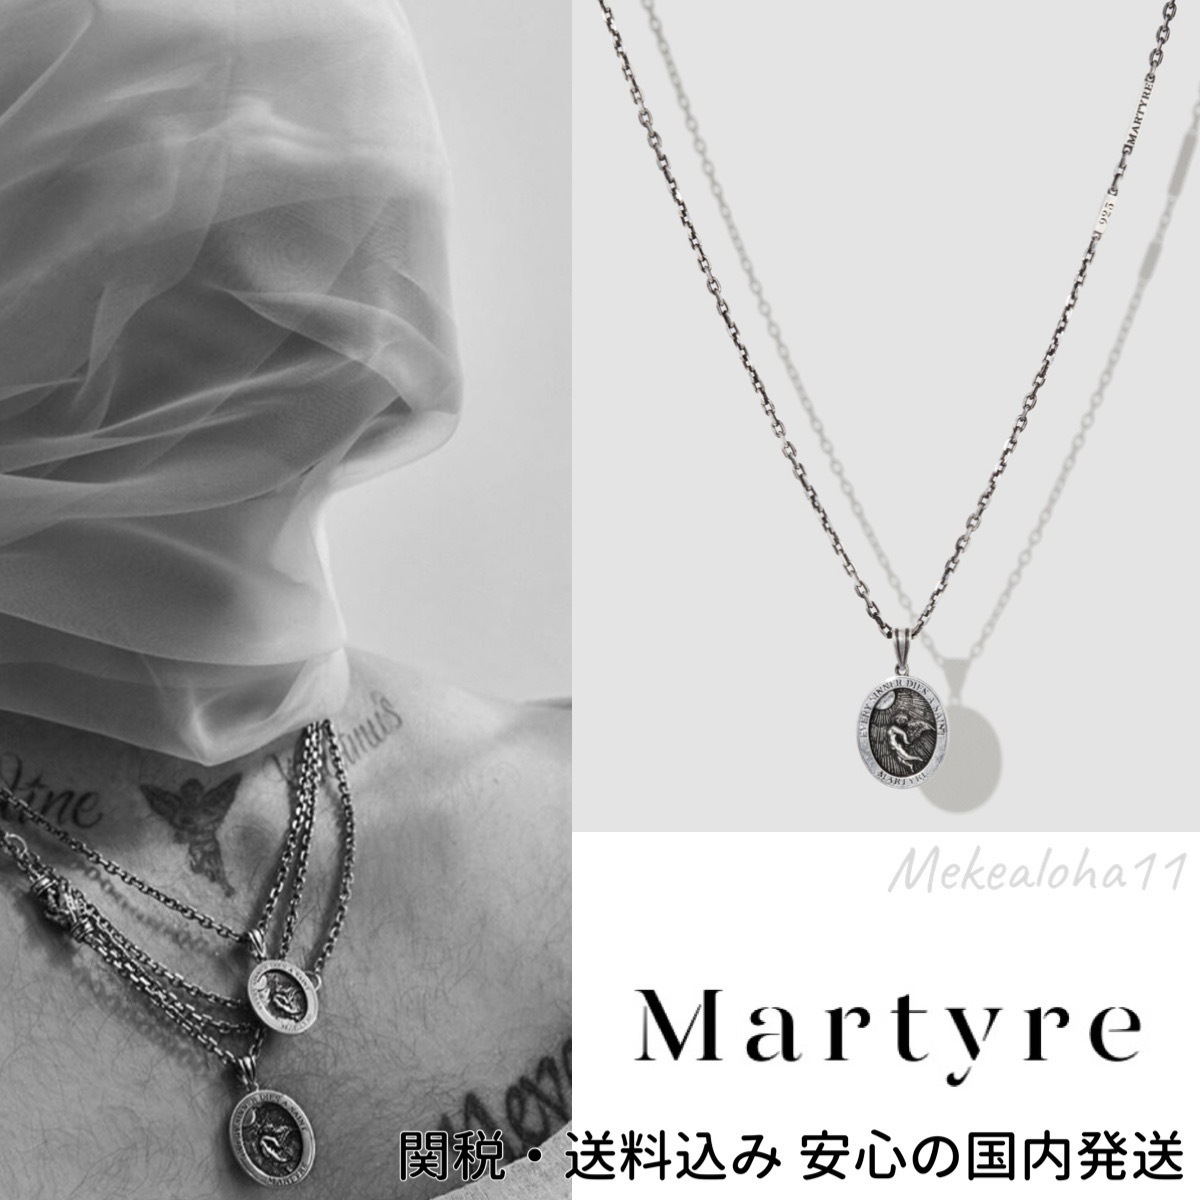 Martyre☆ Sinner Necklace LG ネックレス【雑誌掲載】 (Martyre/ネックレス・チョーカー) 56284292